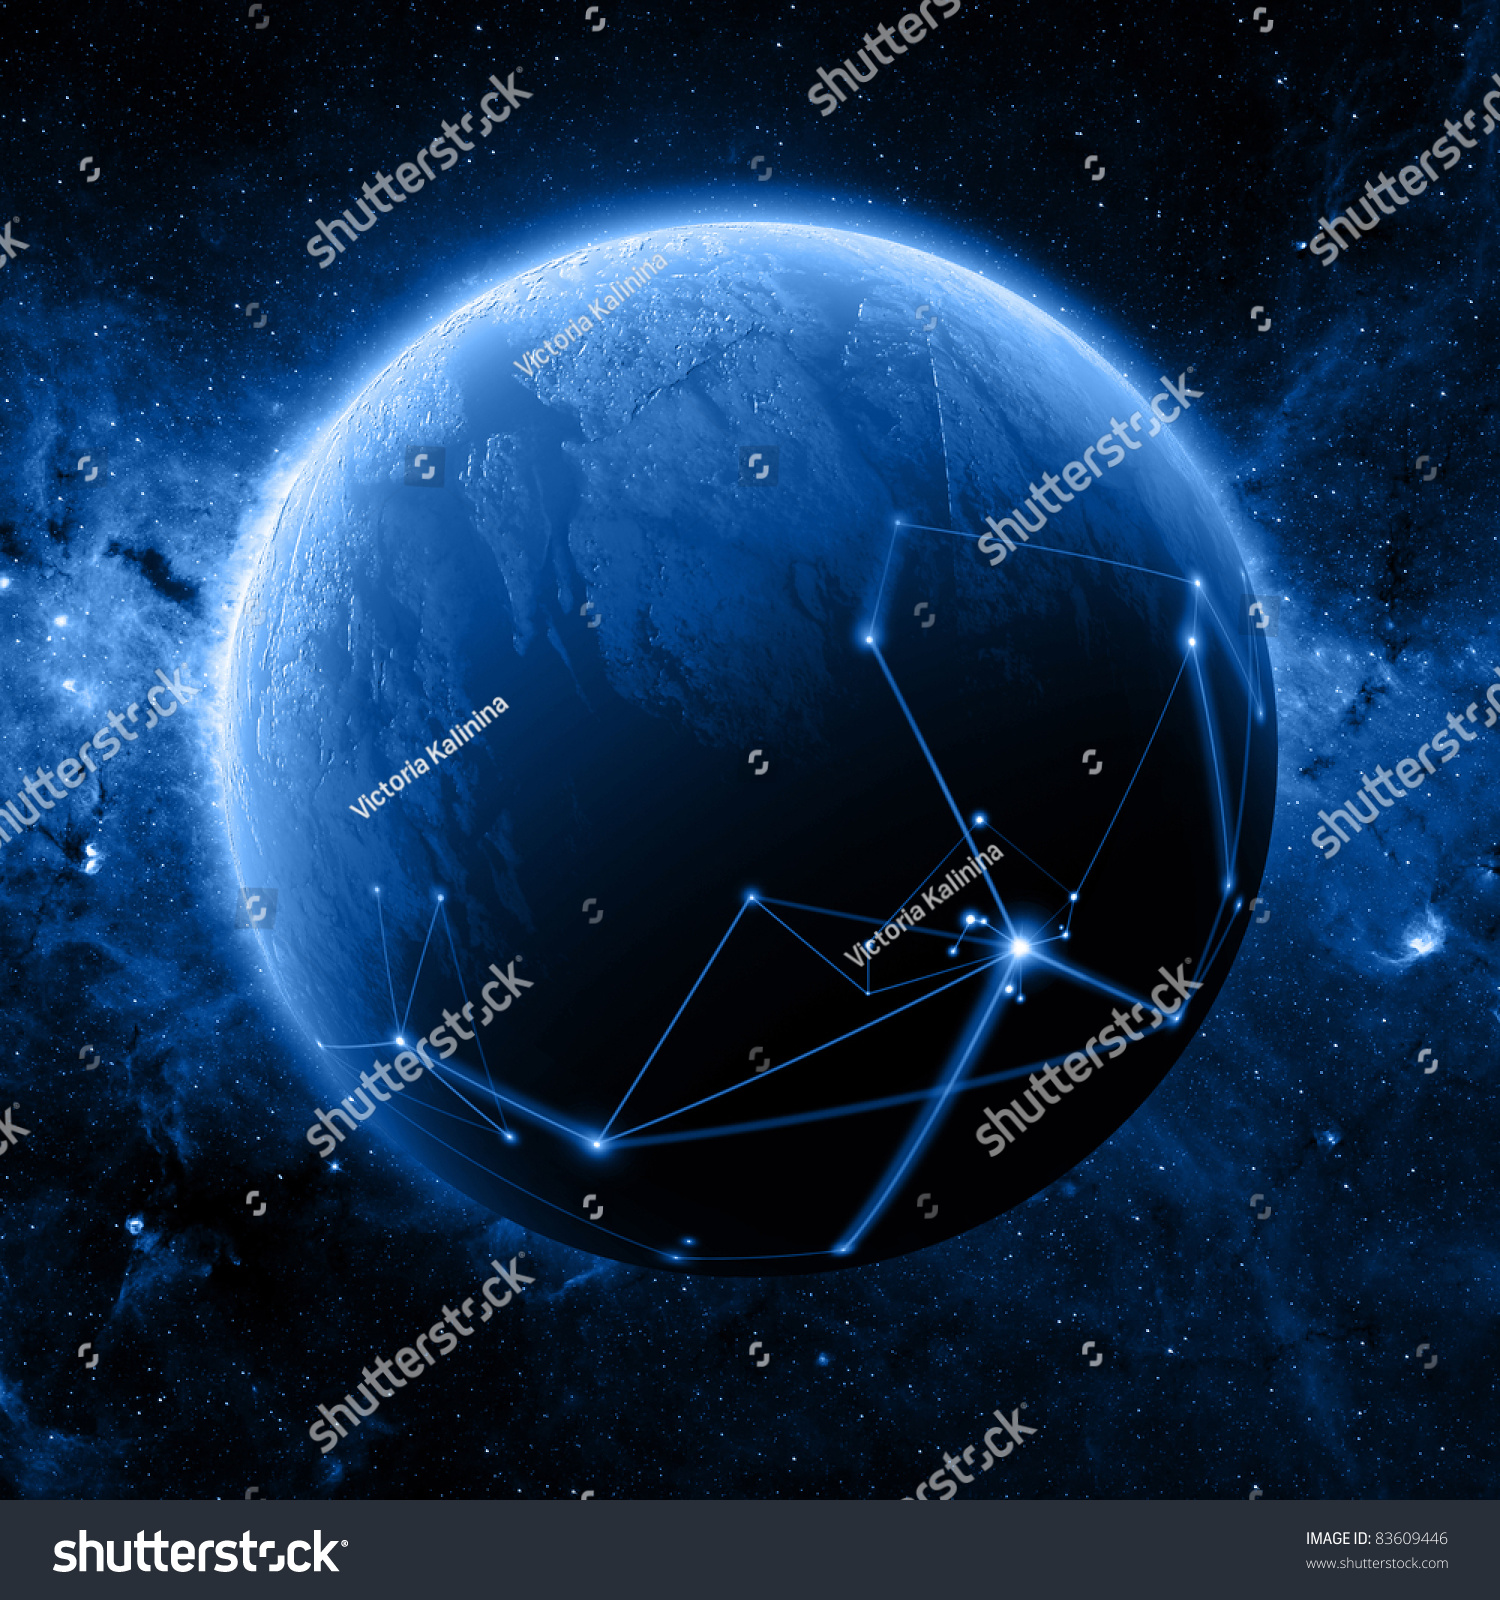 nasa planet found in unknown - photo #6